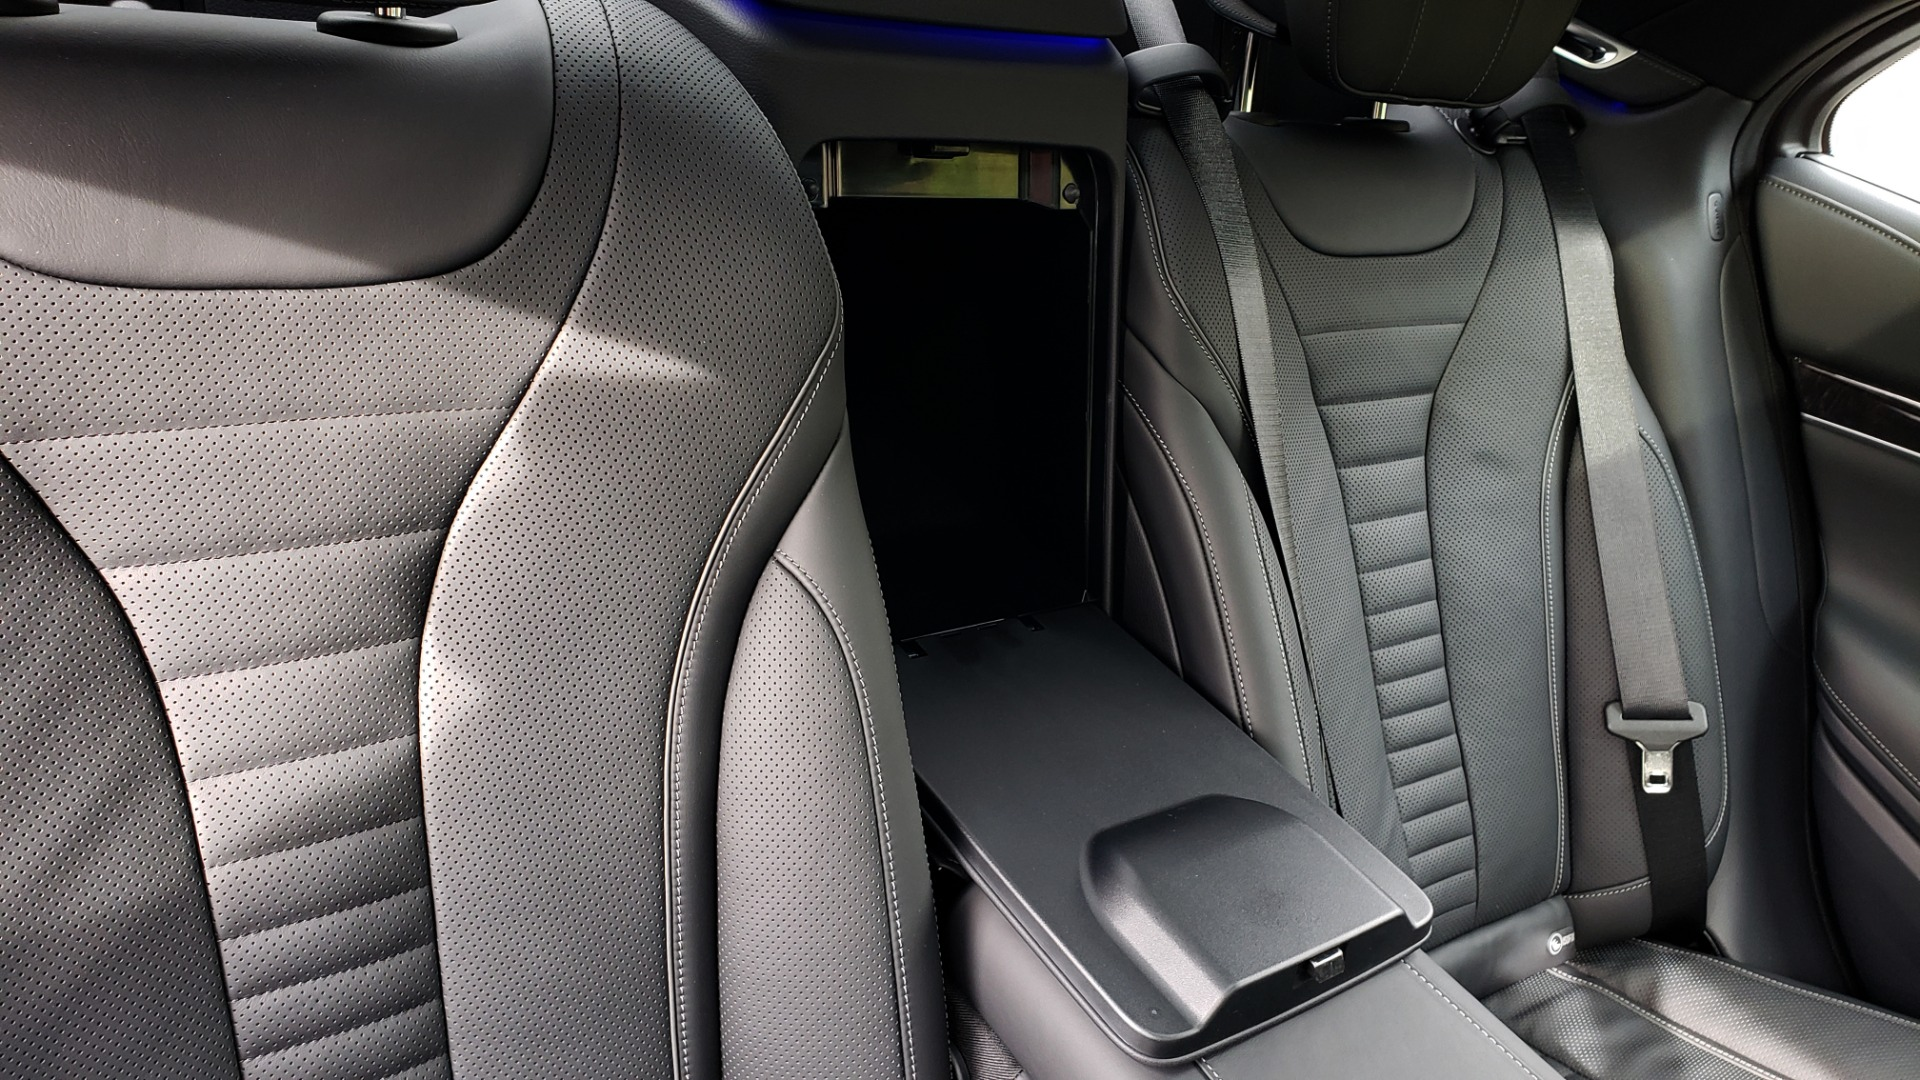 Used 2017 Mercedes-Benz S-CLASS S 550 4MATIC SPORT / PREM PKG / WARMTH & COMFORT / KEYLESS-GO for sale Sold at Formula Imports in Charlotte NC 28227 87